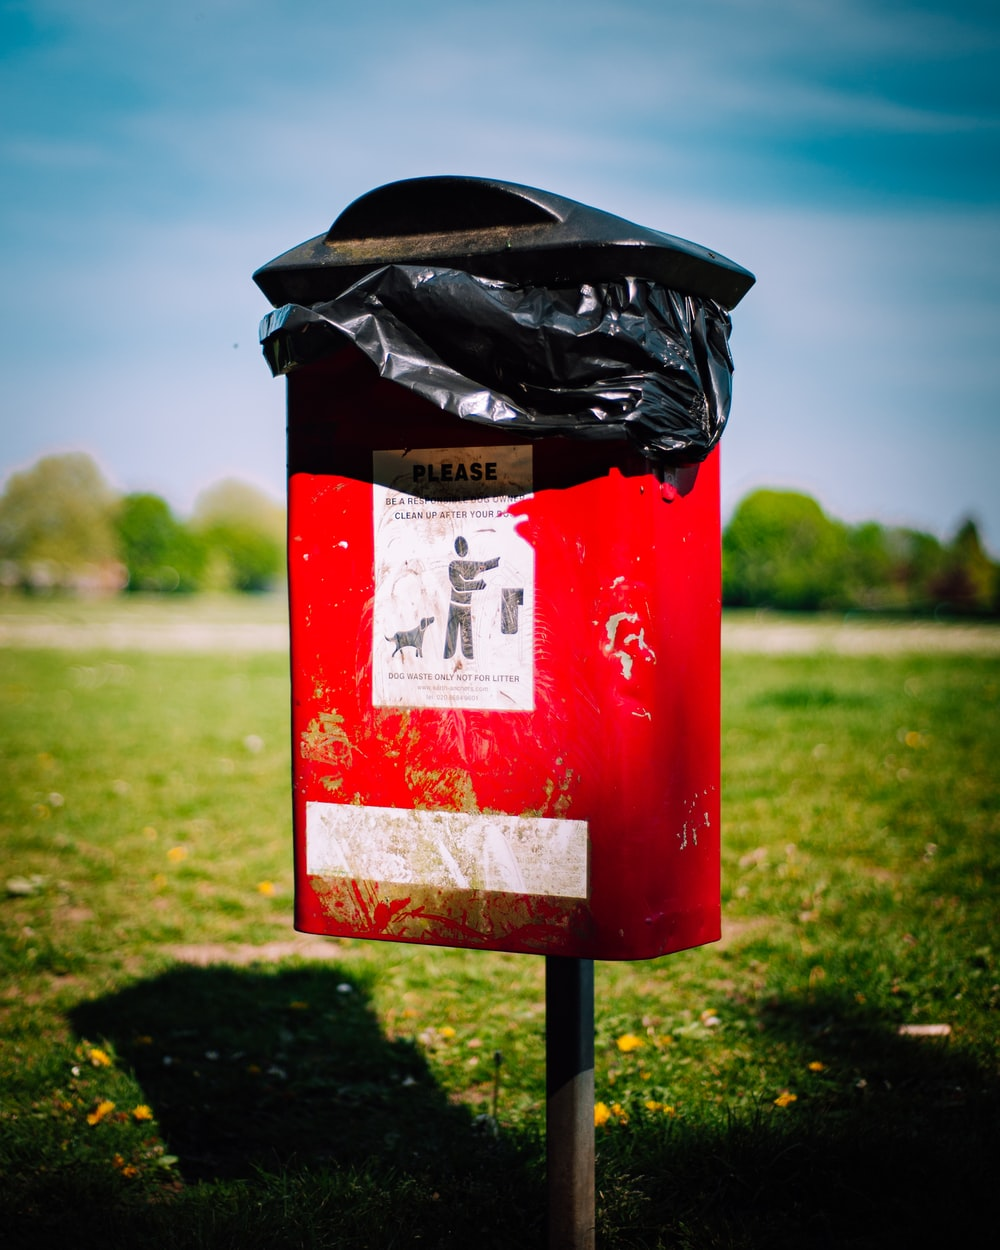 red and black trash bin on green grass field during daytime